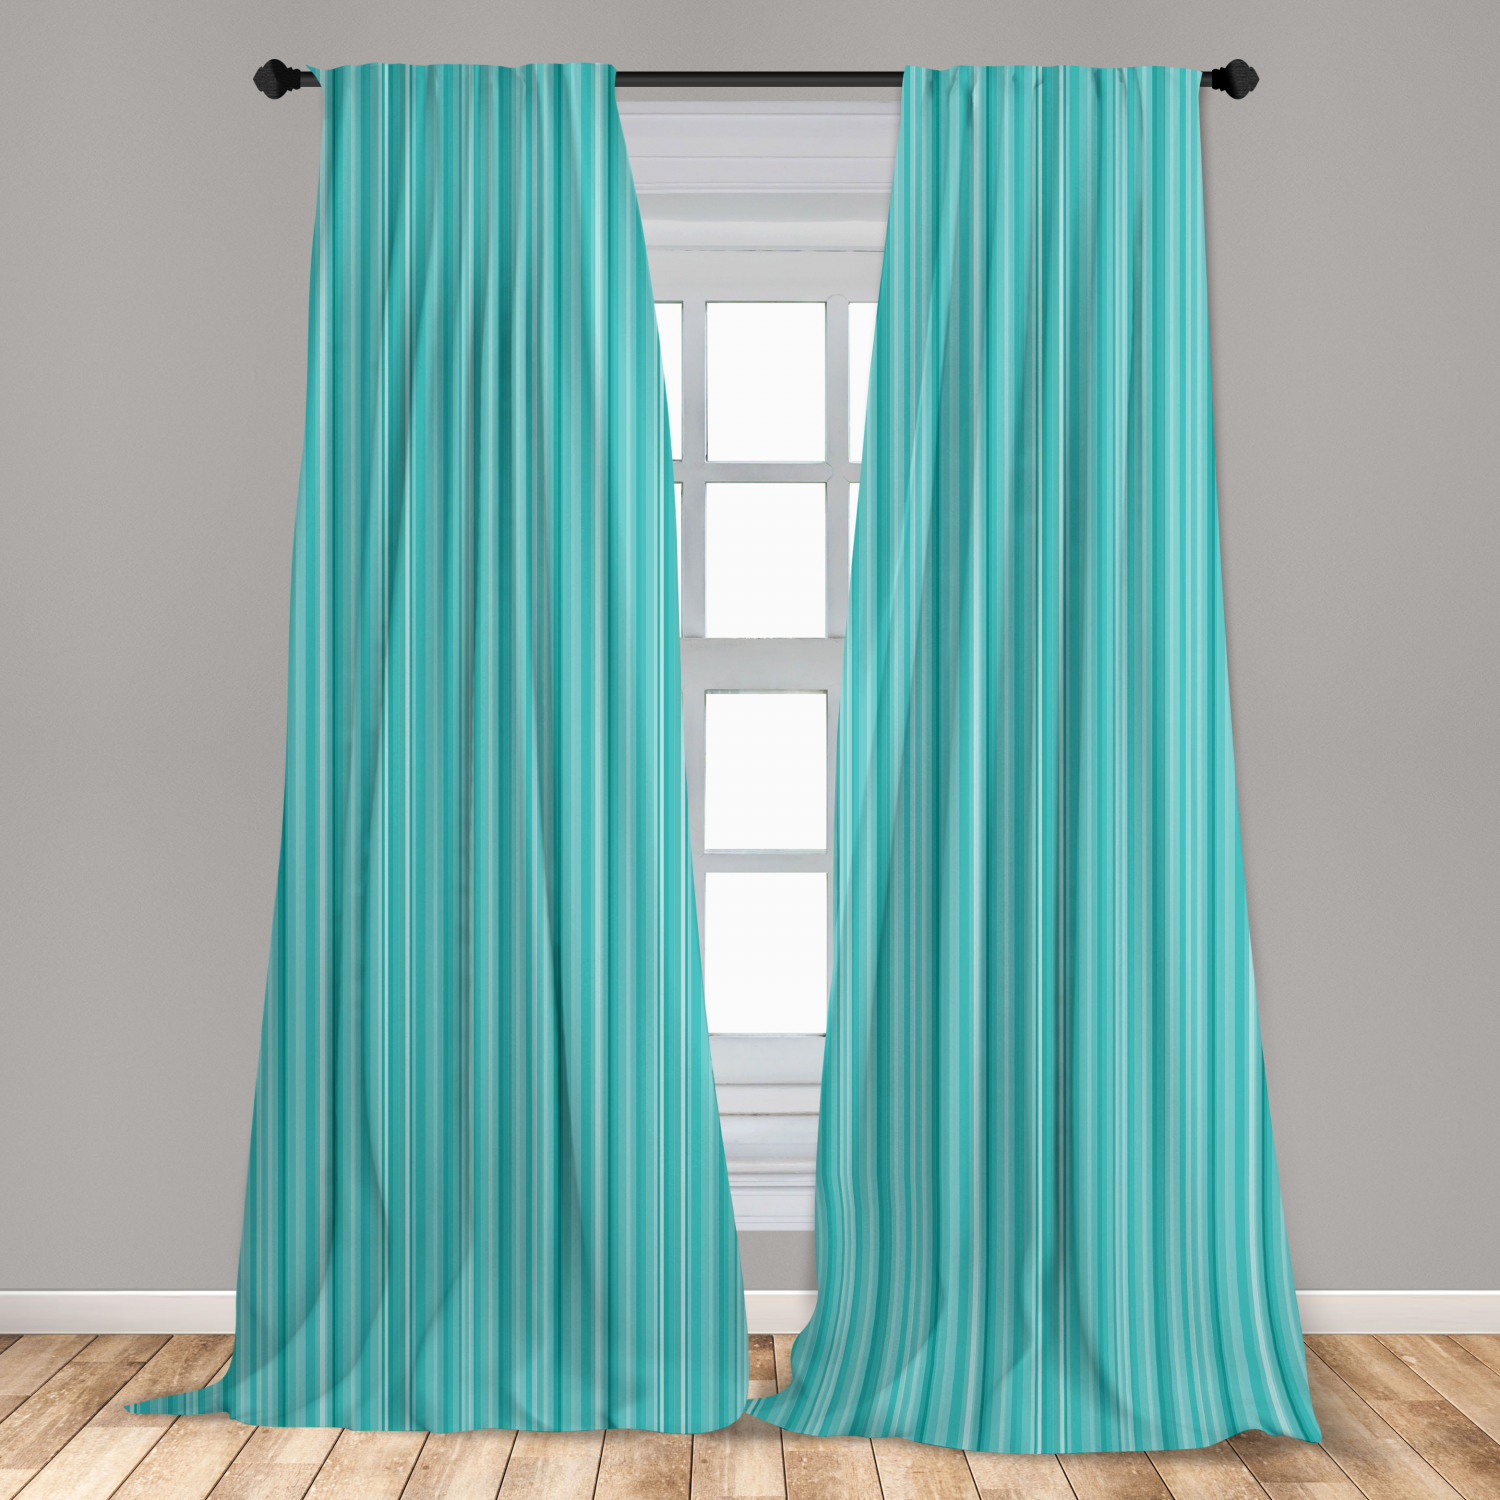 aqua curtains 2 panels set abstract ocean inspired palette lines geometrical image window drapes for living room bedroom turquoise pale blue by